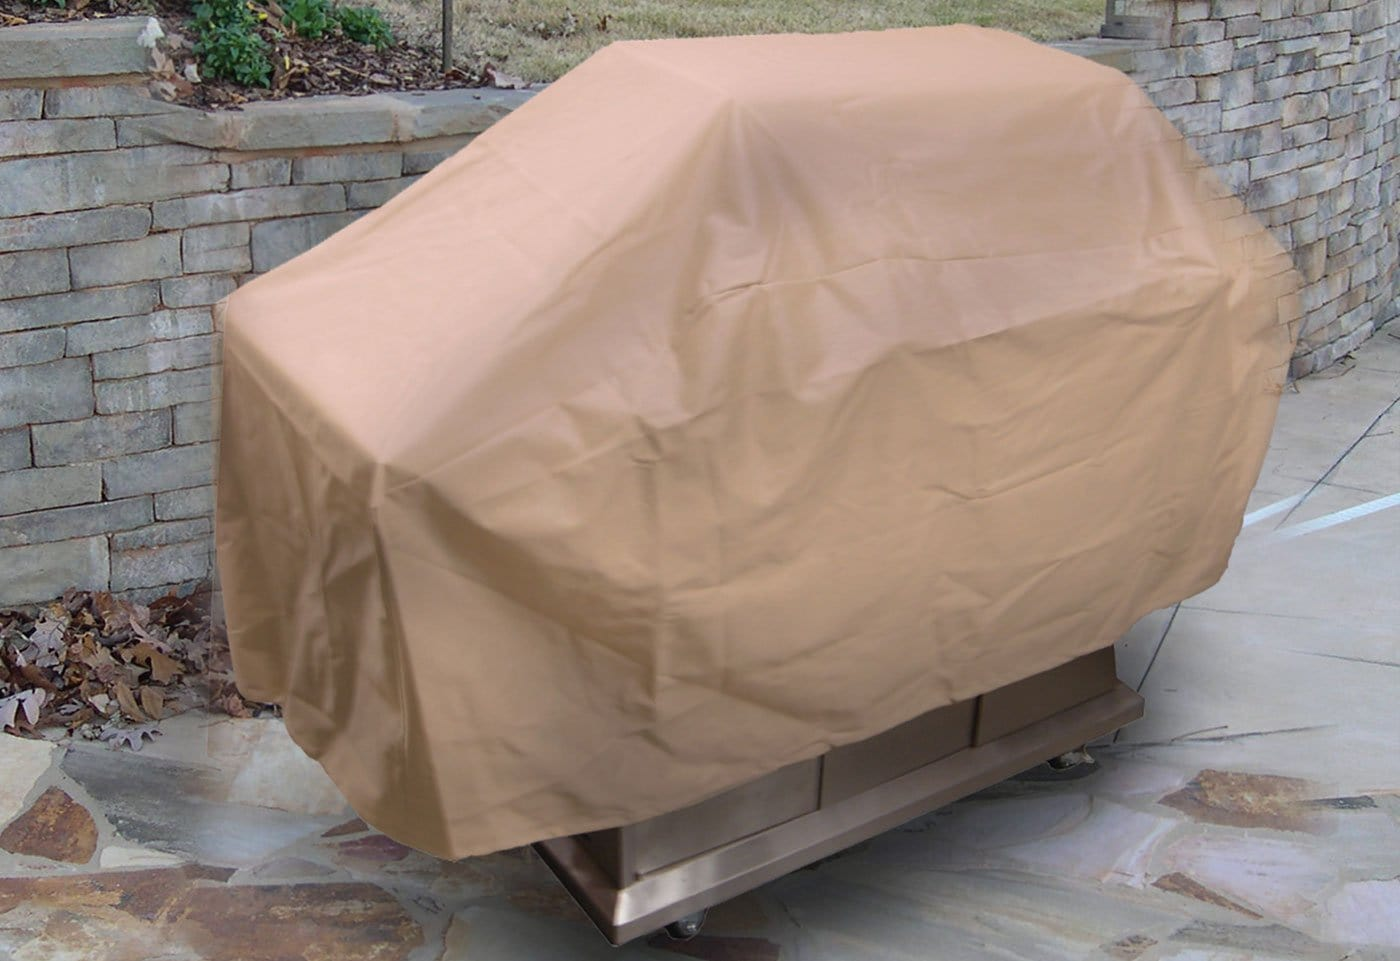 Superieur ... Hearth And Garden Outdoor Grill Cover